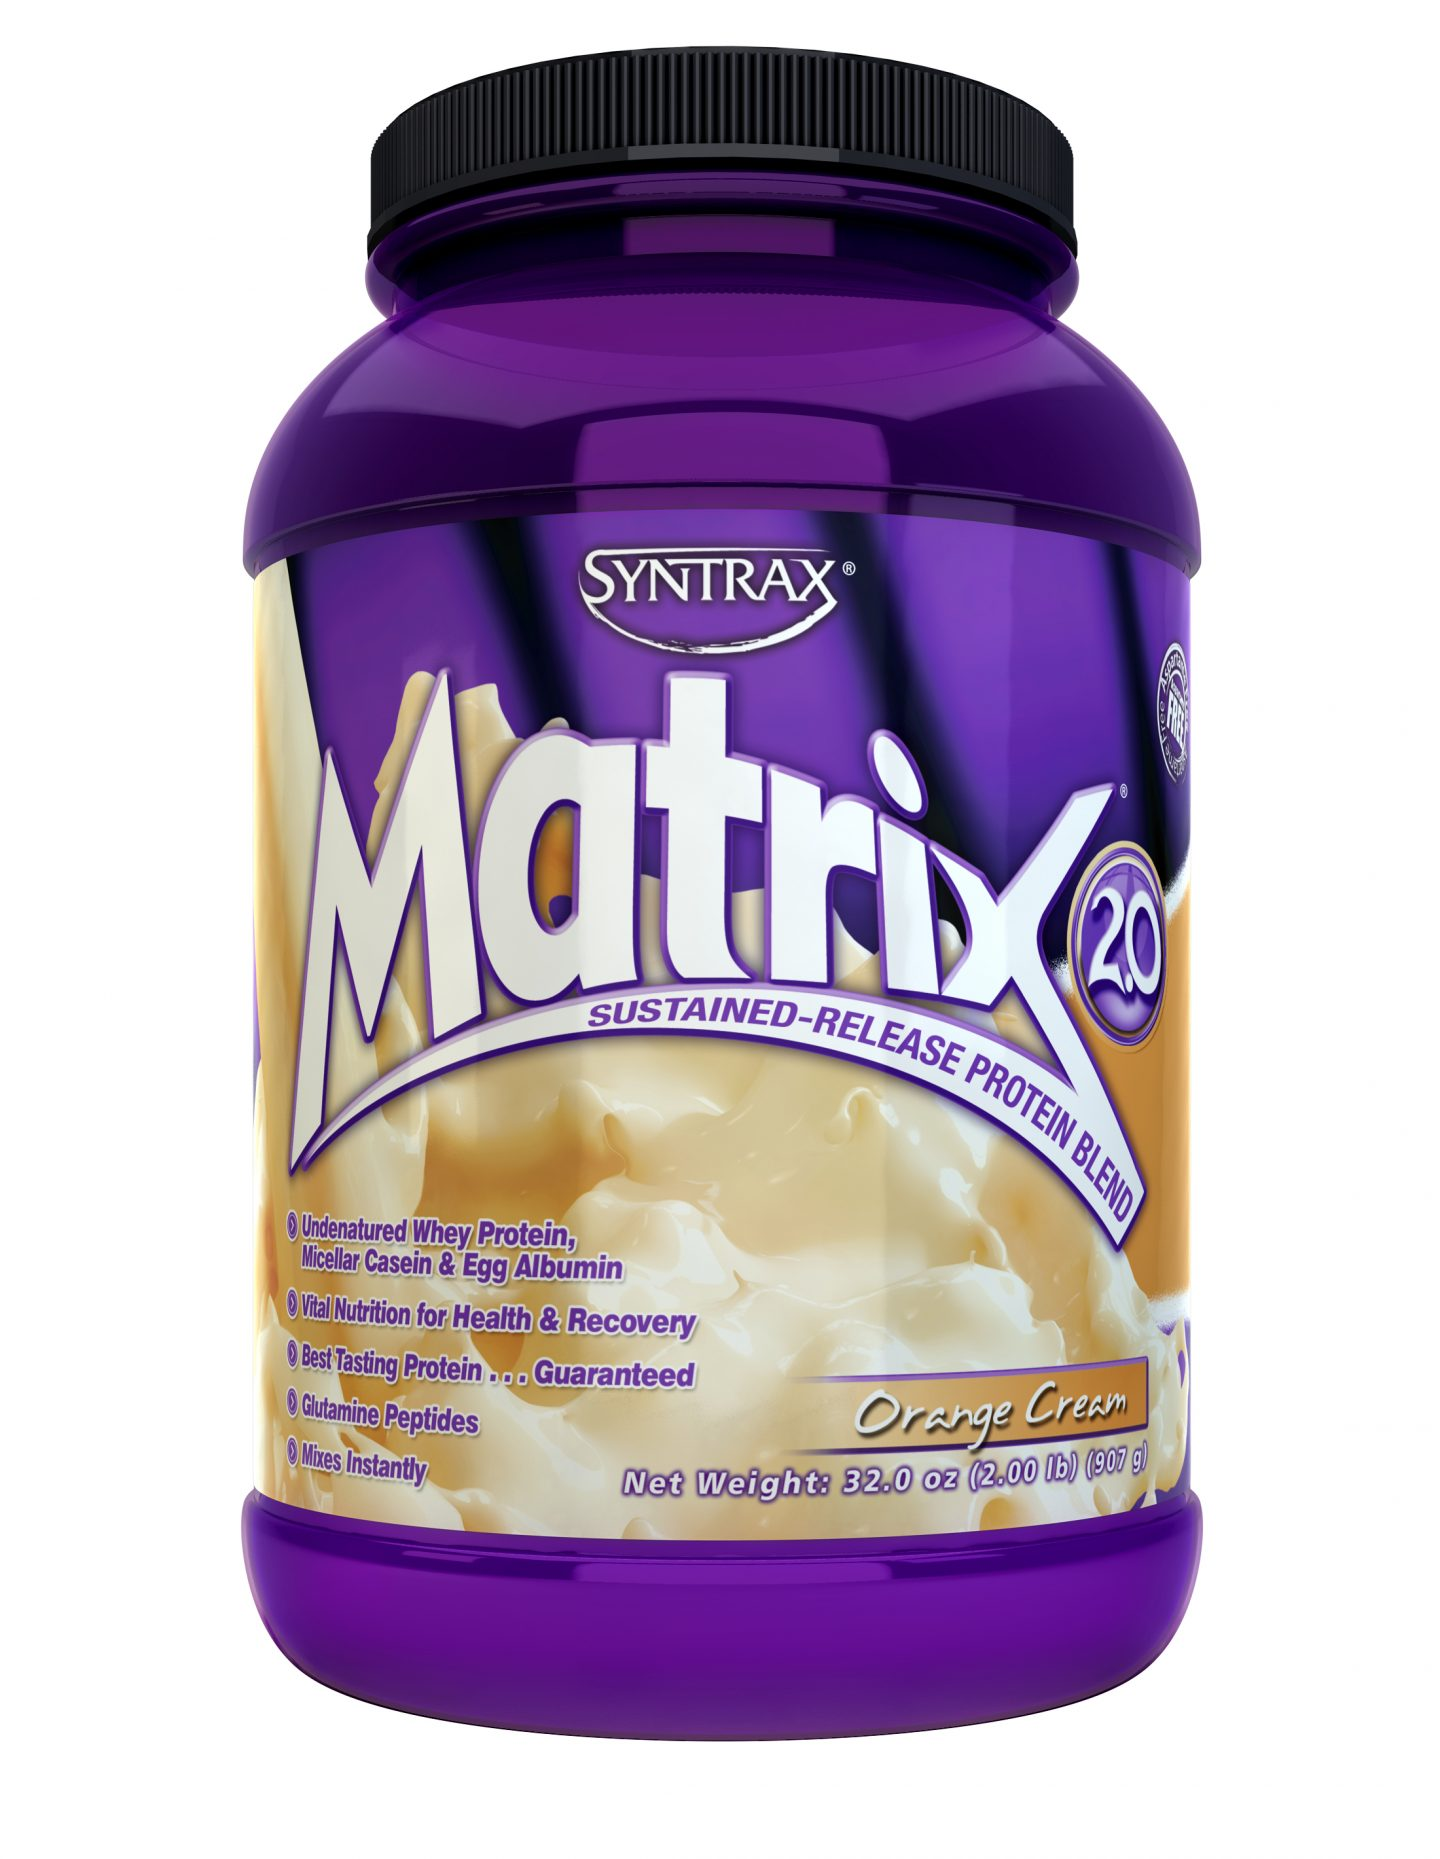 syntrax low carb protein powder for weight loss